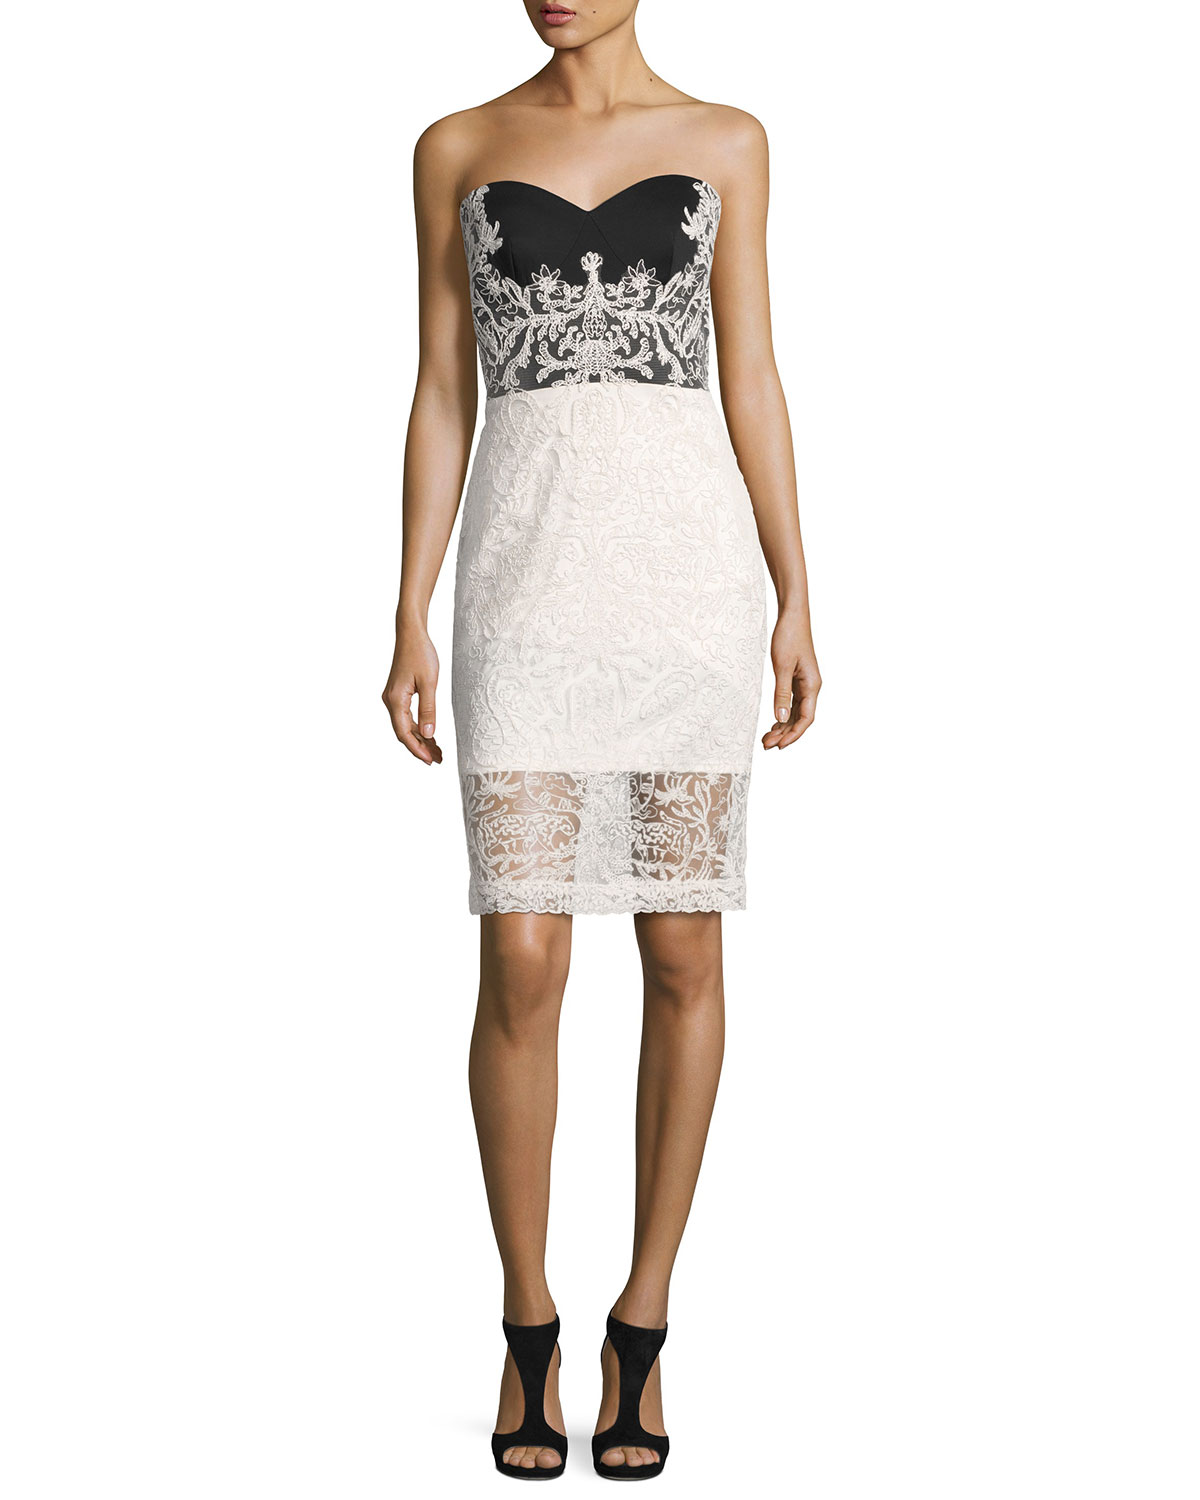 Strapless Two-Tone Lace Cocktail Dress, Black/White